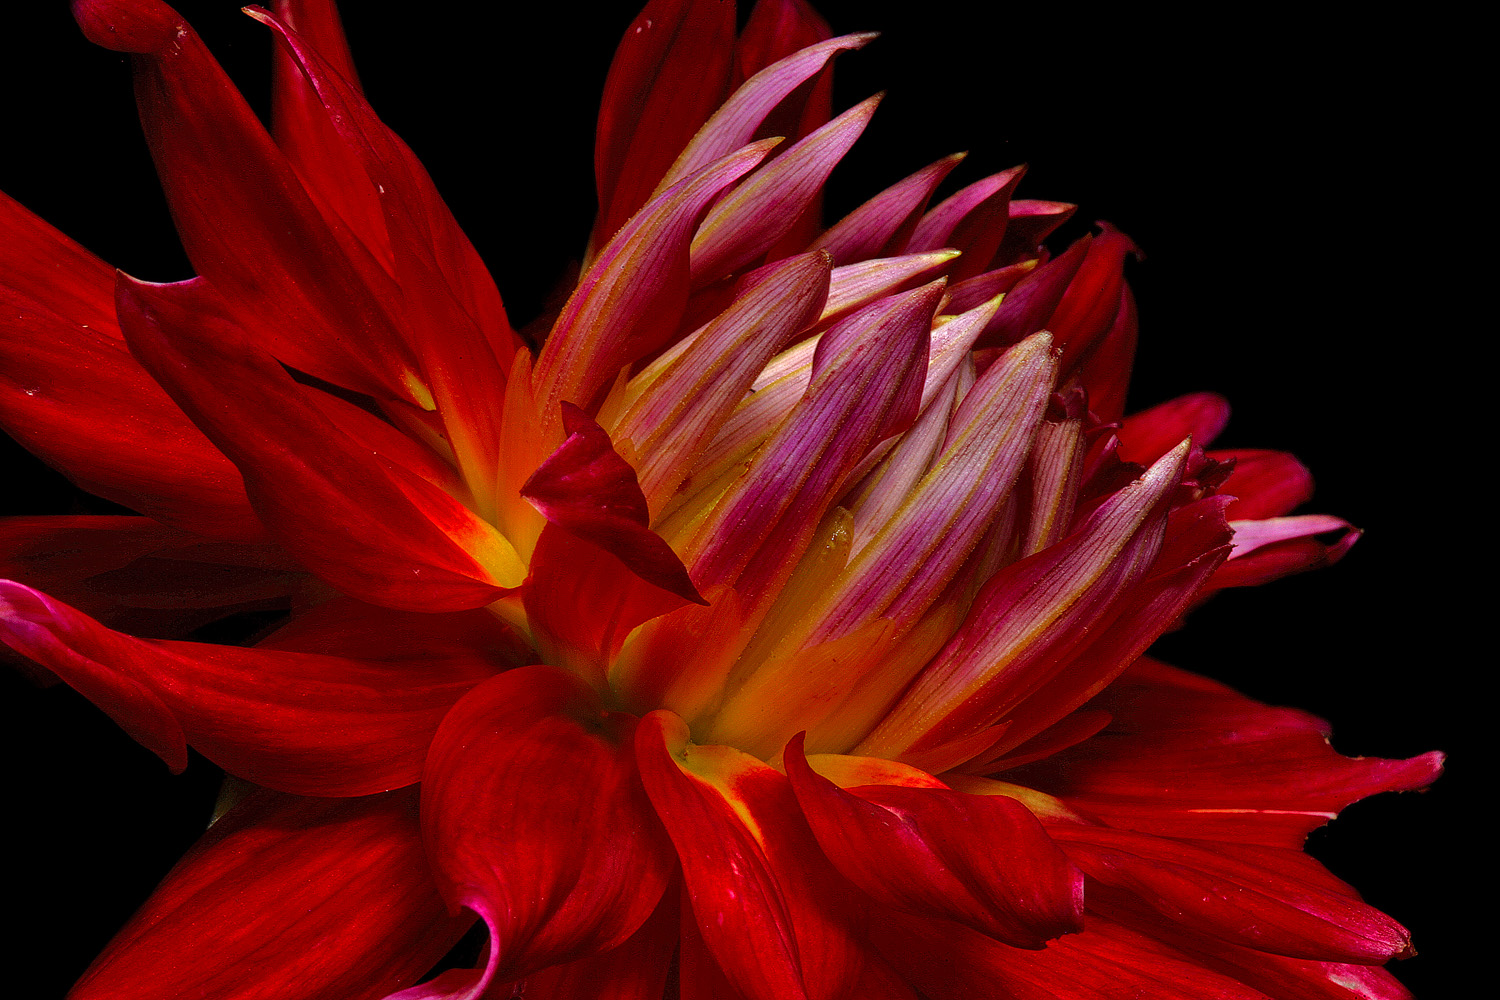 red dahlia img aw author sava gregory and verena